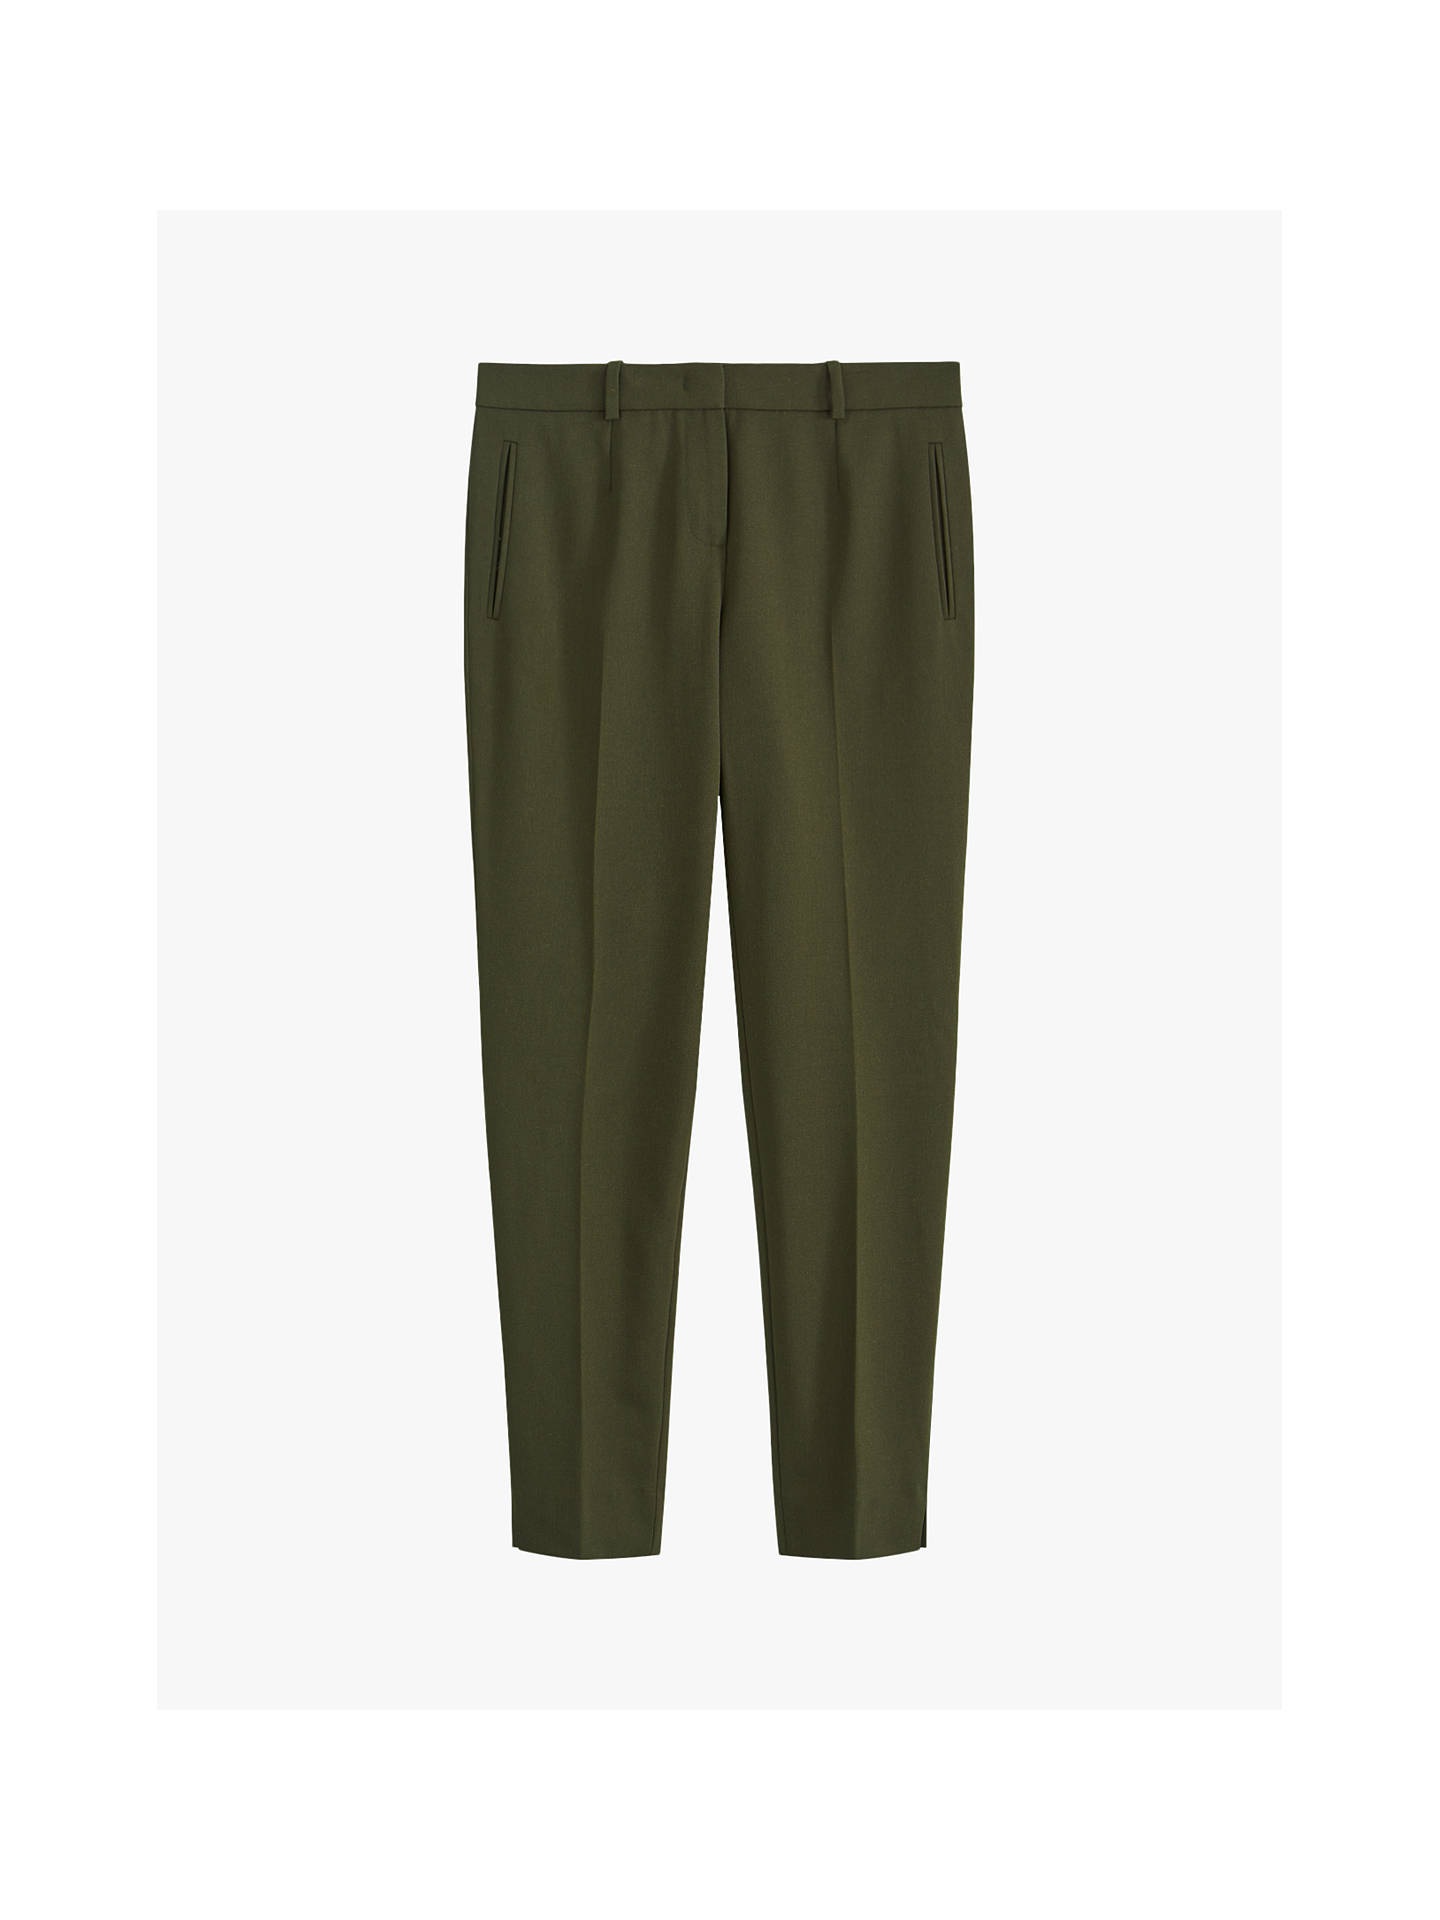 Buy Jigsaw Paris Slim Tapered Trousers, Dark Olive, 6 Online at johnlewis.com